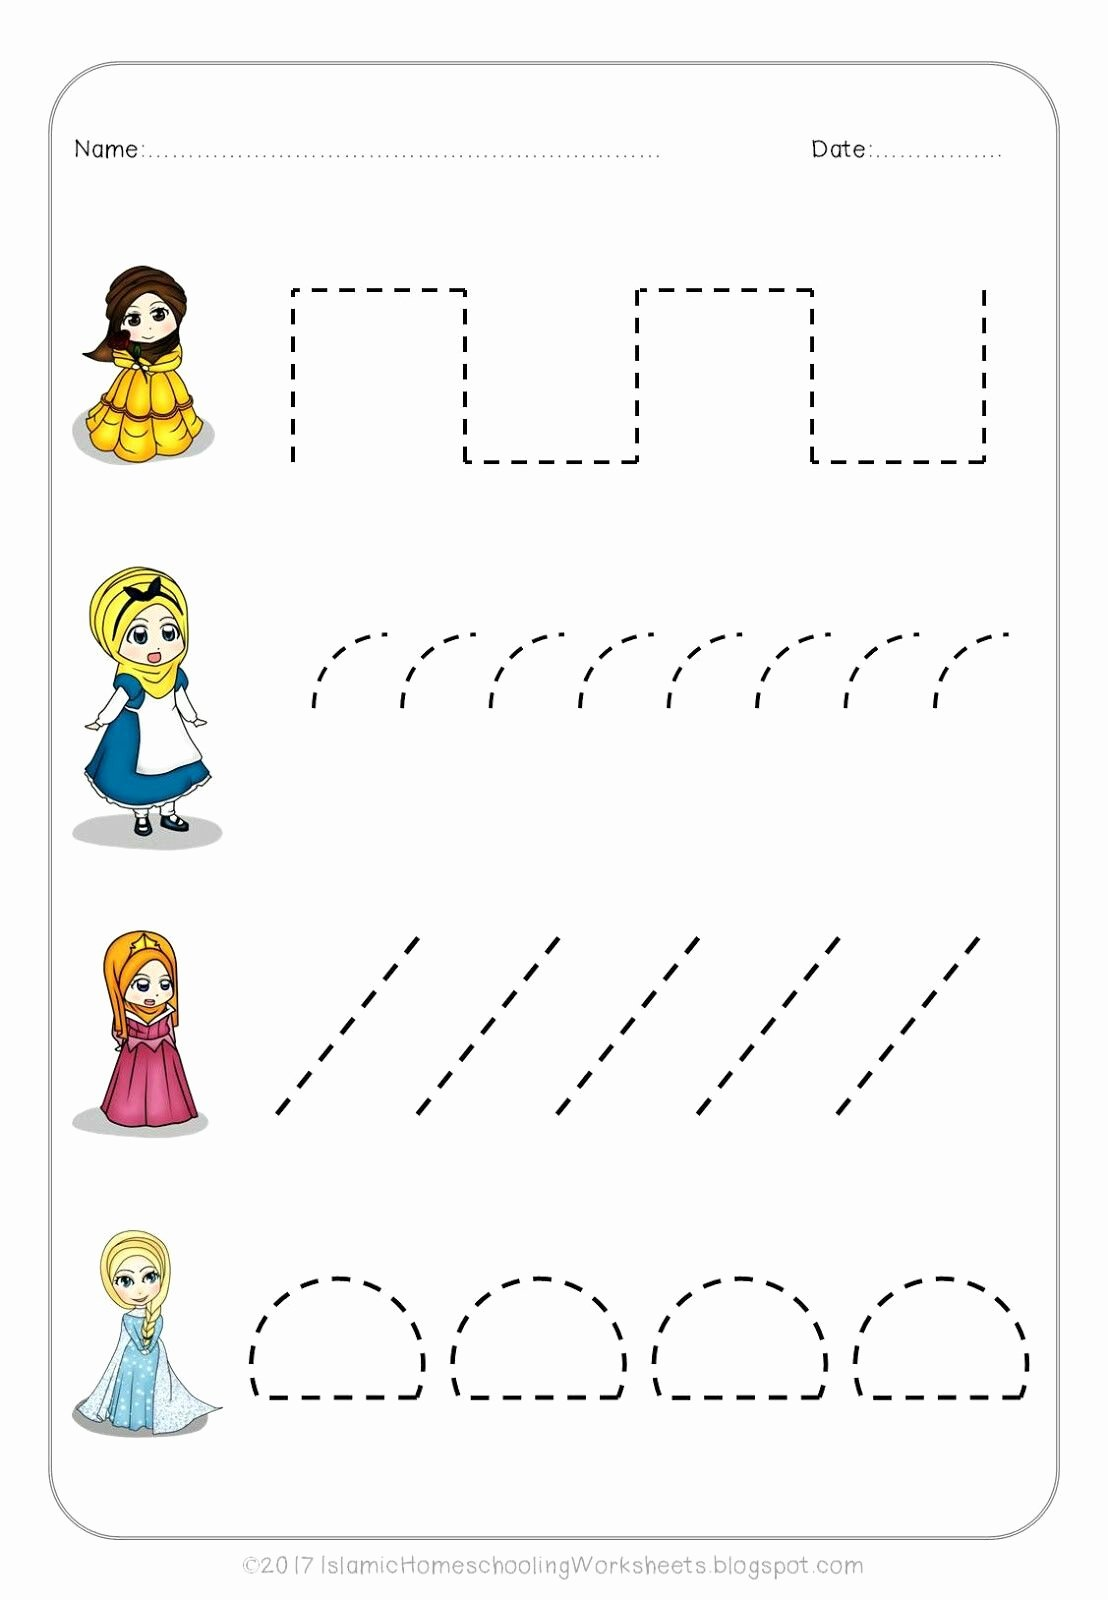 Free Disney Worksheets for Preschoolers top Free Prewriting Practice In Disney Princess Preschool Pack